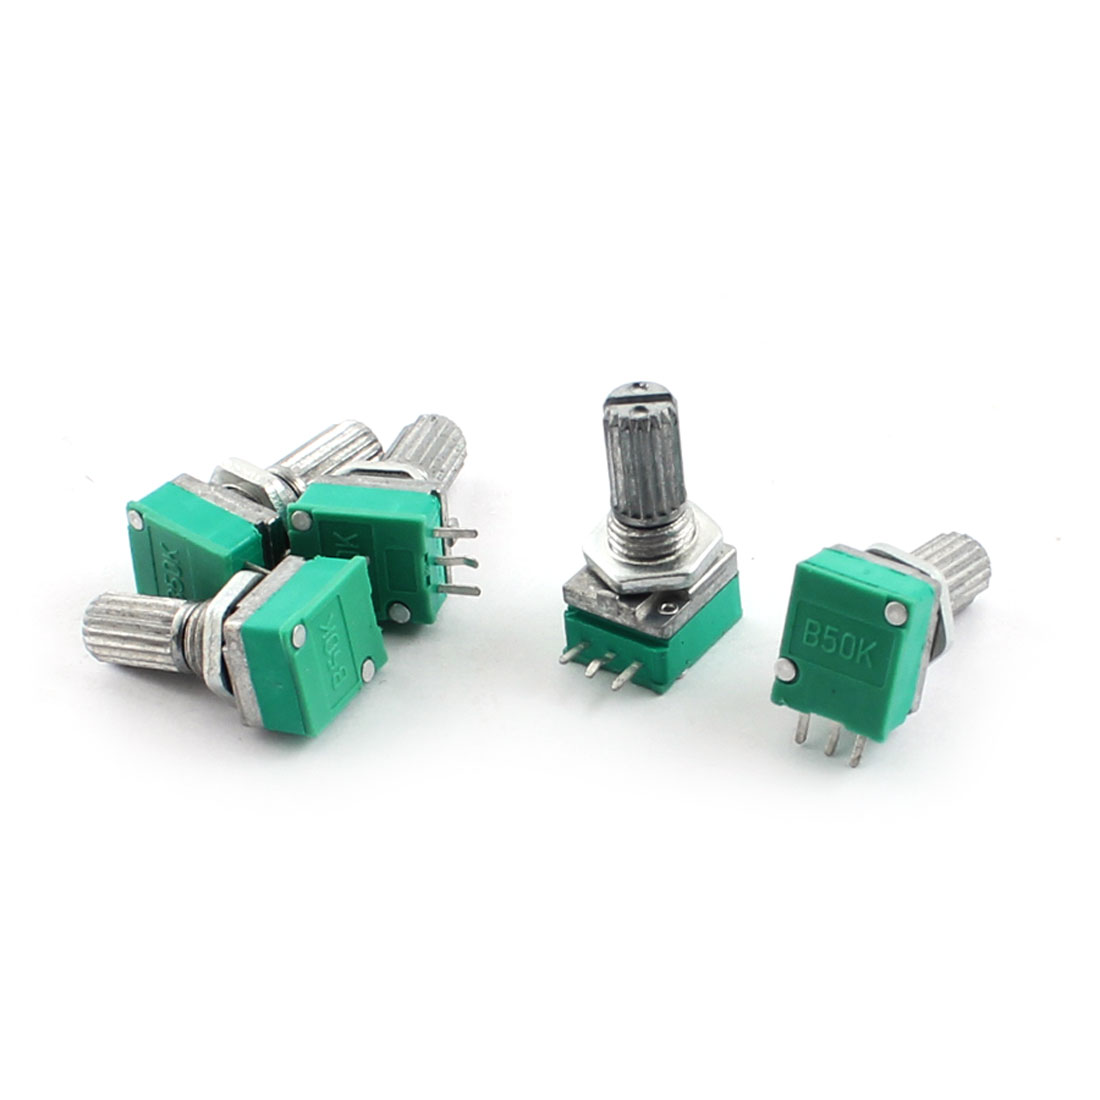 5 Pcs B50K Type B 50K Ohm 3Pin Terminal Single Linear Rotary Taper Potentiometer